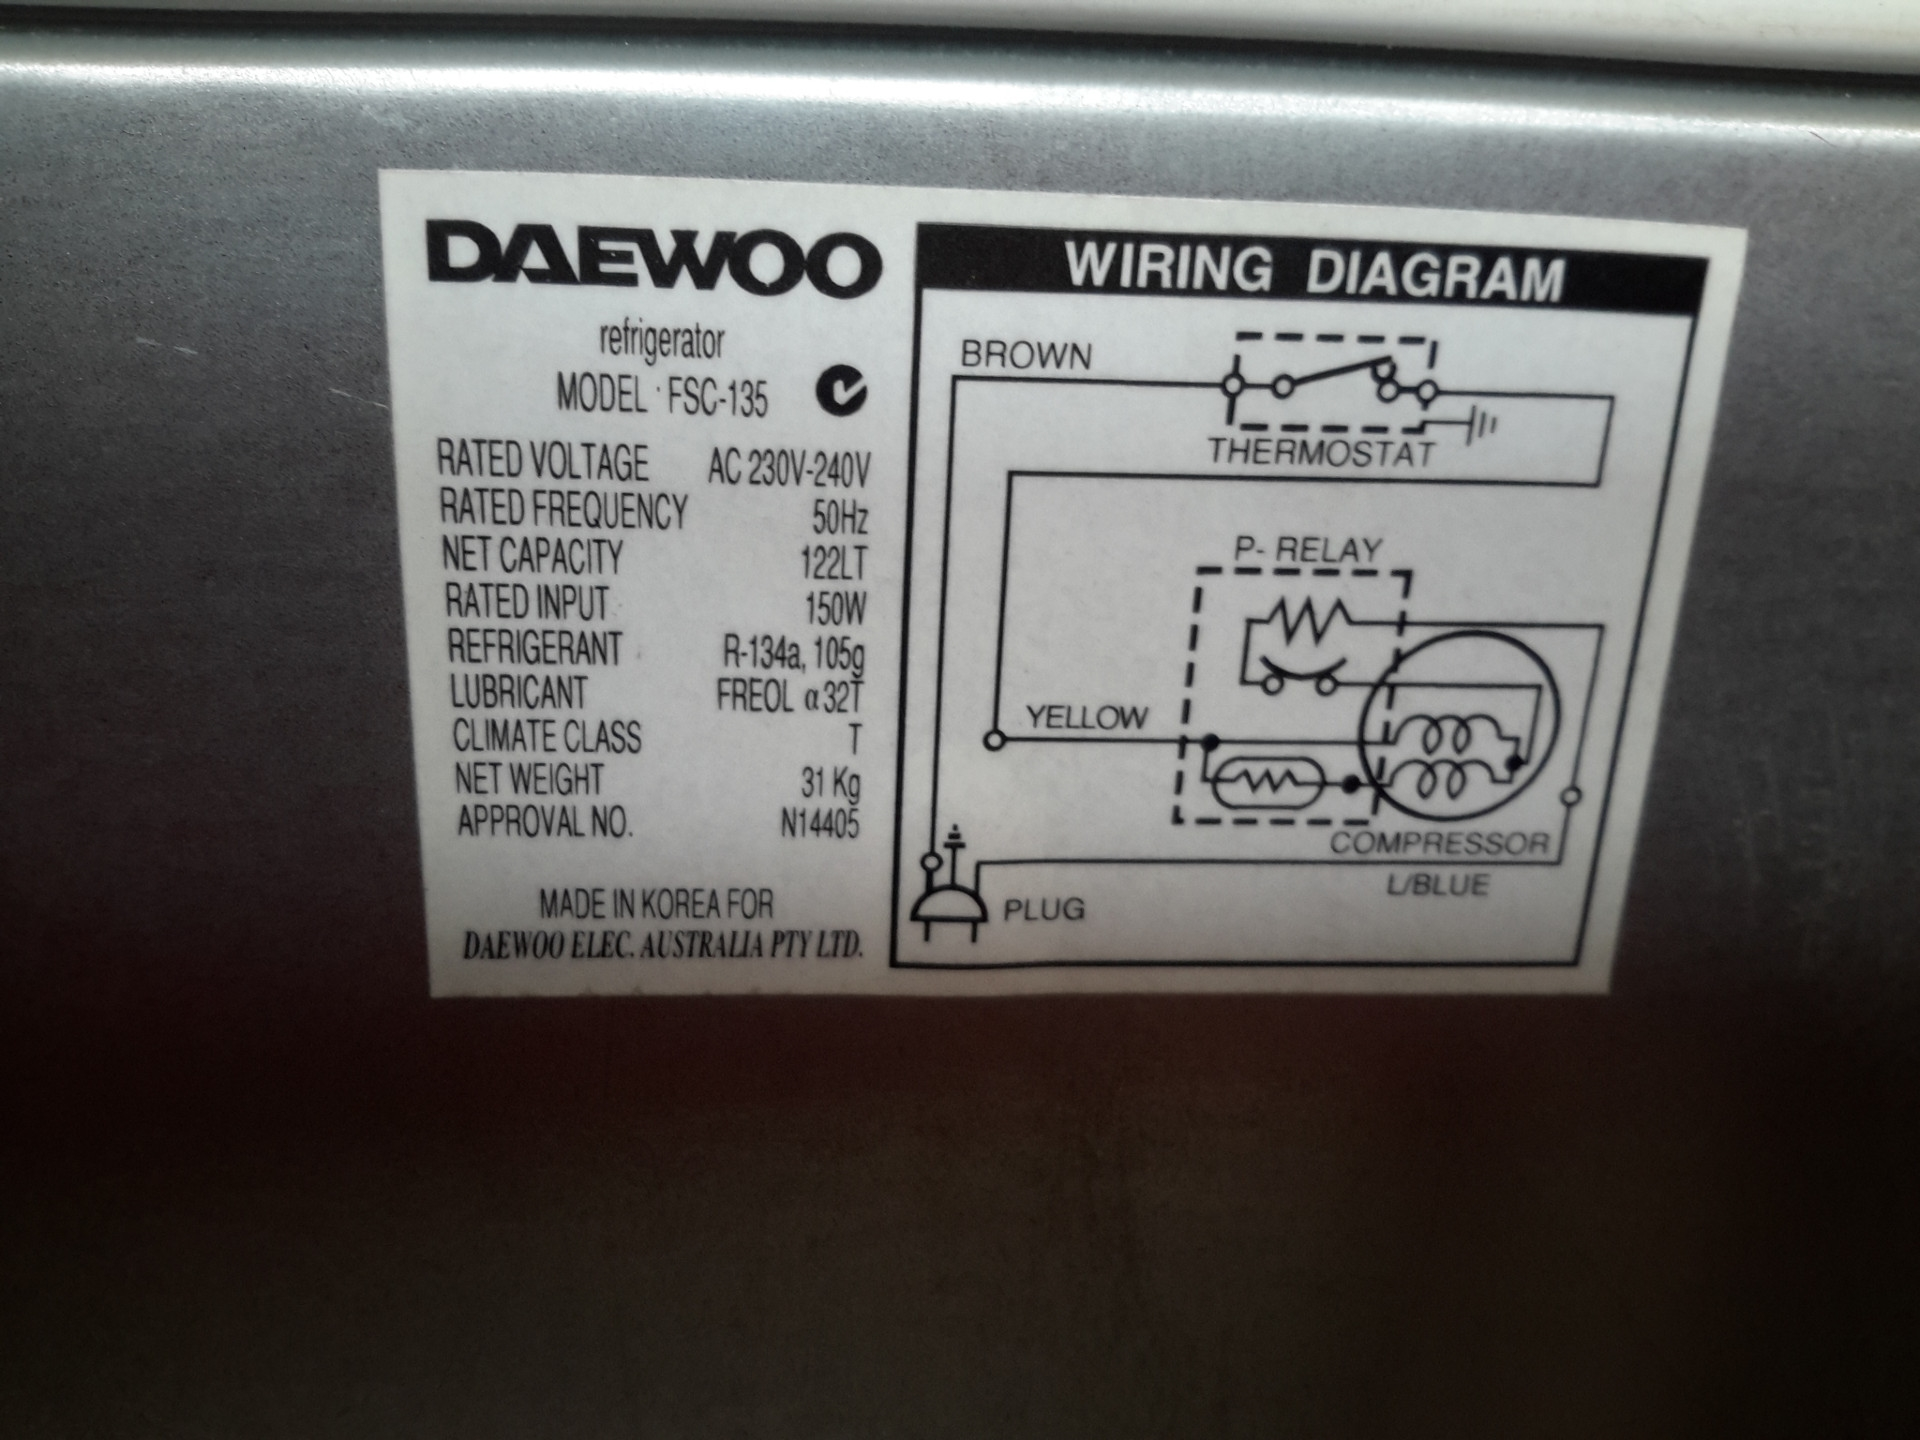 Bar fridge daewoo model fsc 135 requires cleaning not tested asfbconference2016 Choice Image